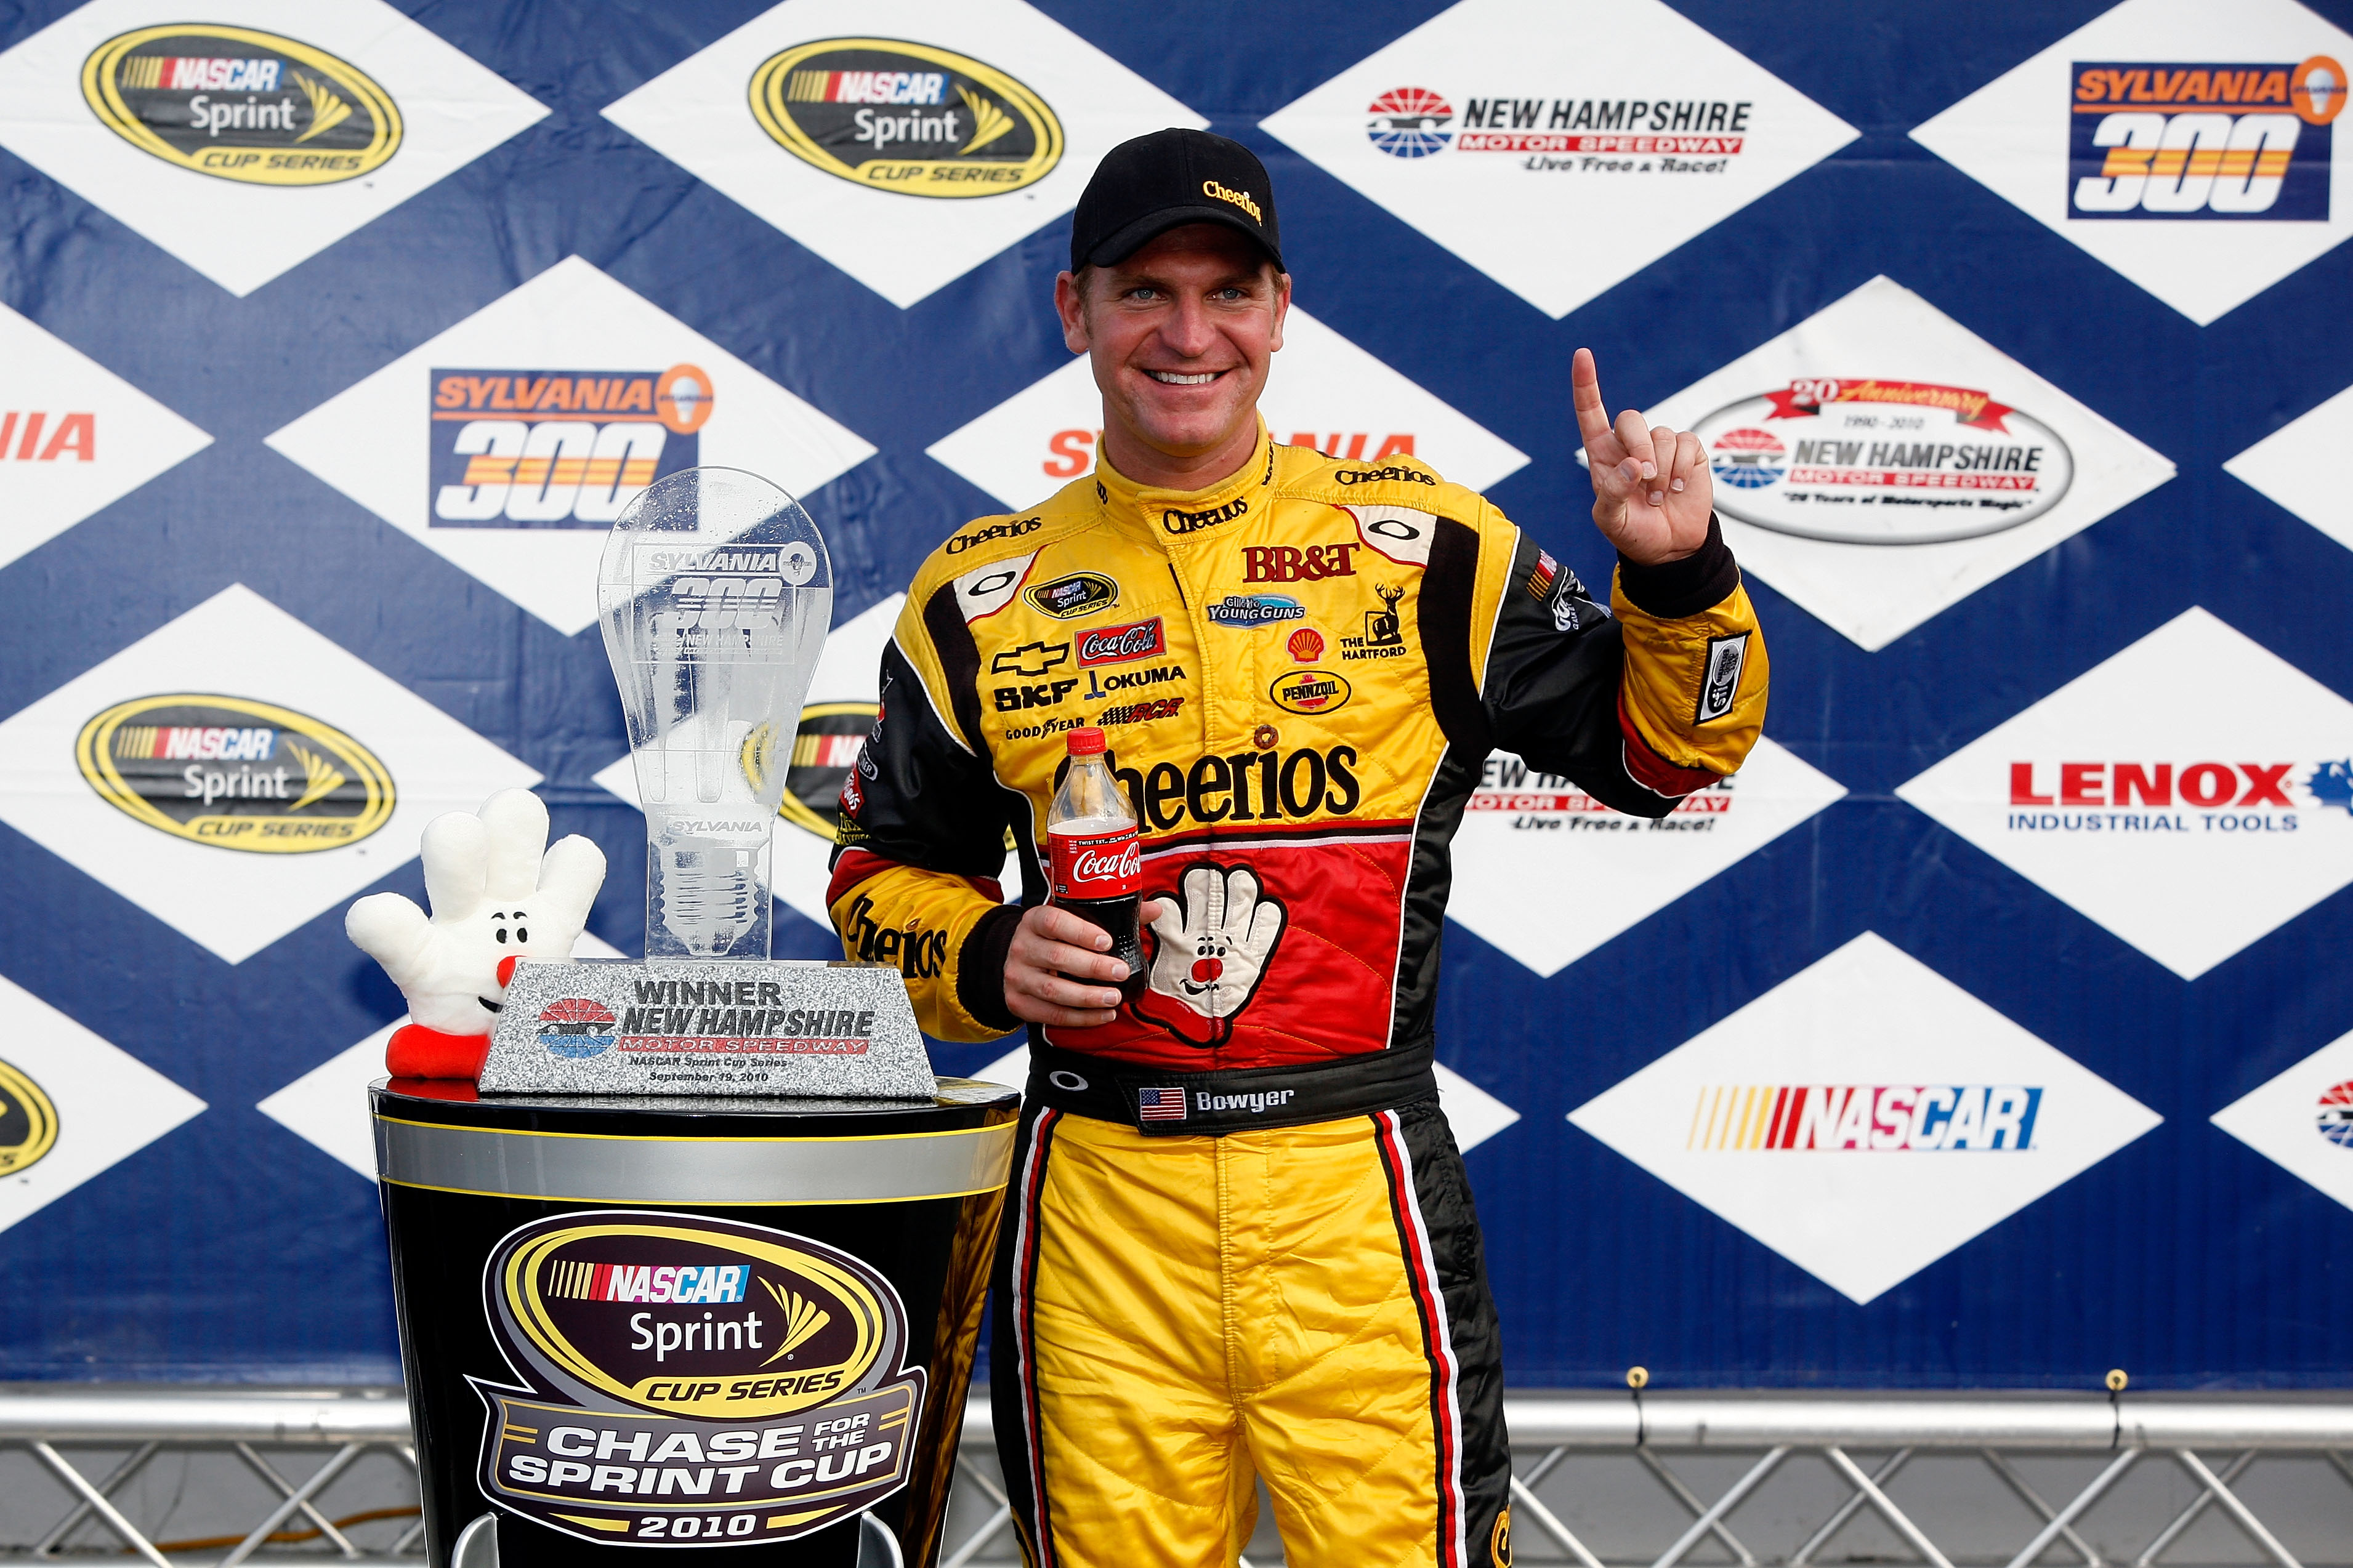 LOUDON, NH - SEPTEMBER 19:  Clint Bowyer, driver of the #33 Cheerios / Hamburger Helper Chevrolet celebrates with the trophy in victory lane after winning the NASCAR Sprint Cup Series Sylvania 300 at New Hampshire Motor Speedway on September 19, 2010 in L